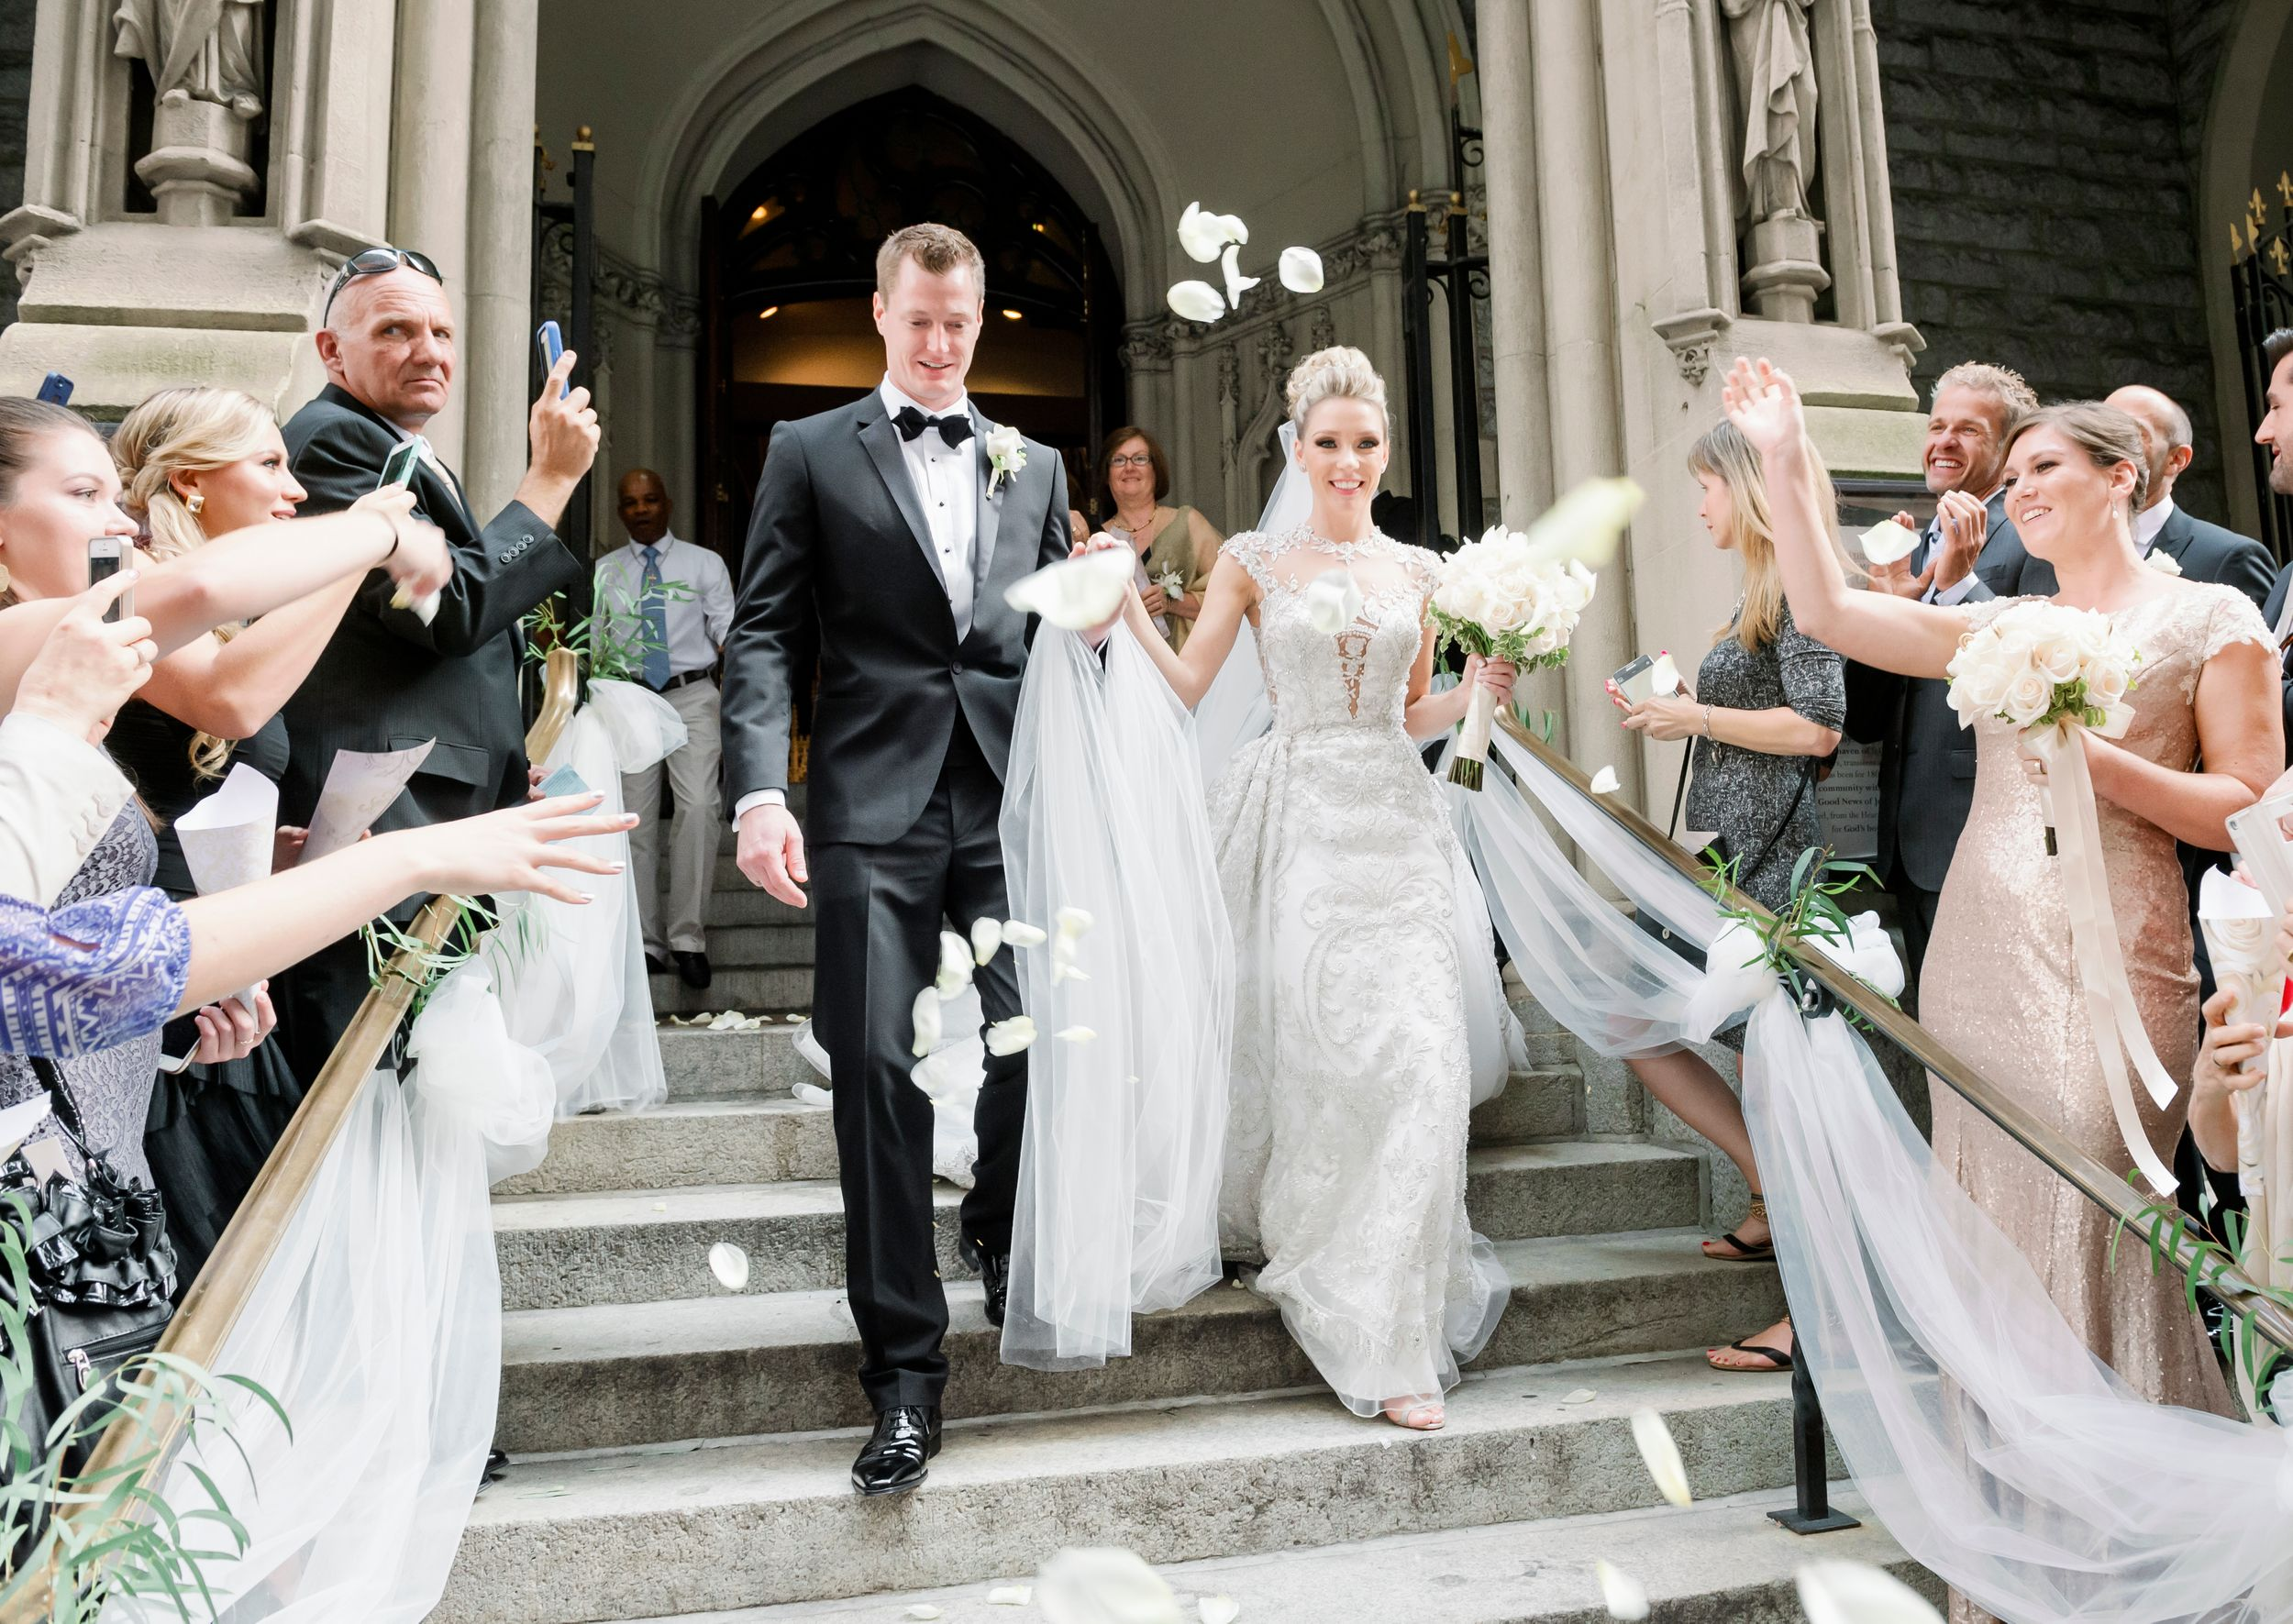 Candid wedding photograph of a bride and groom exiting a church in Philadelphia.